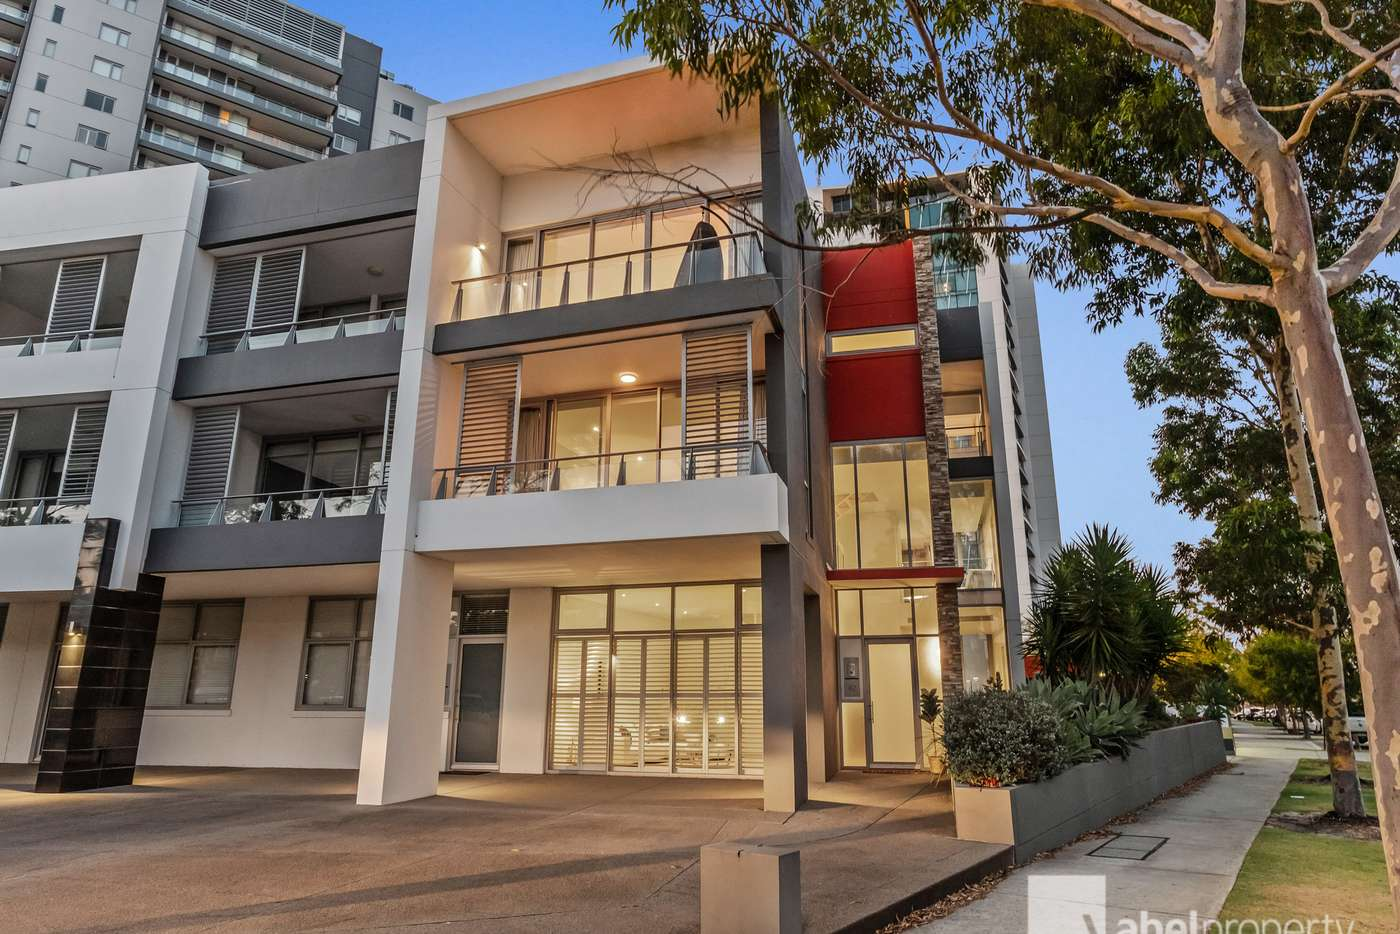 Main view of Homely house listing, 42 The Circus, Burswood WA 6100